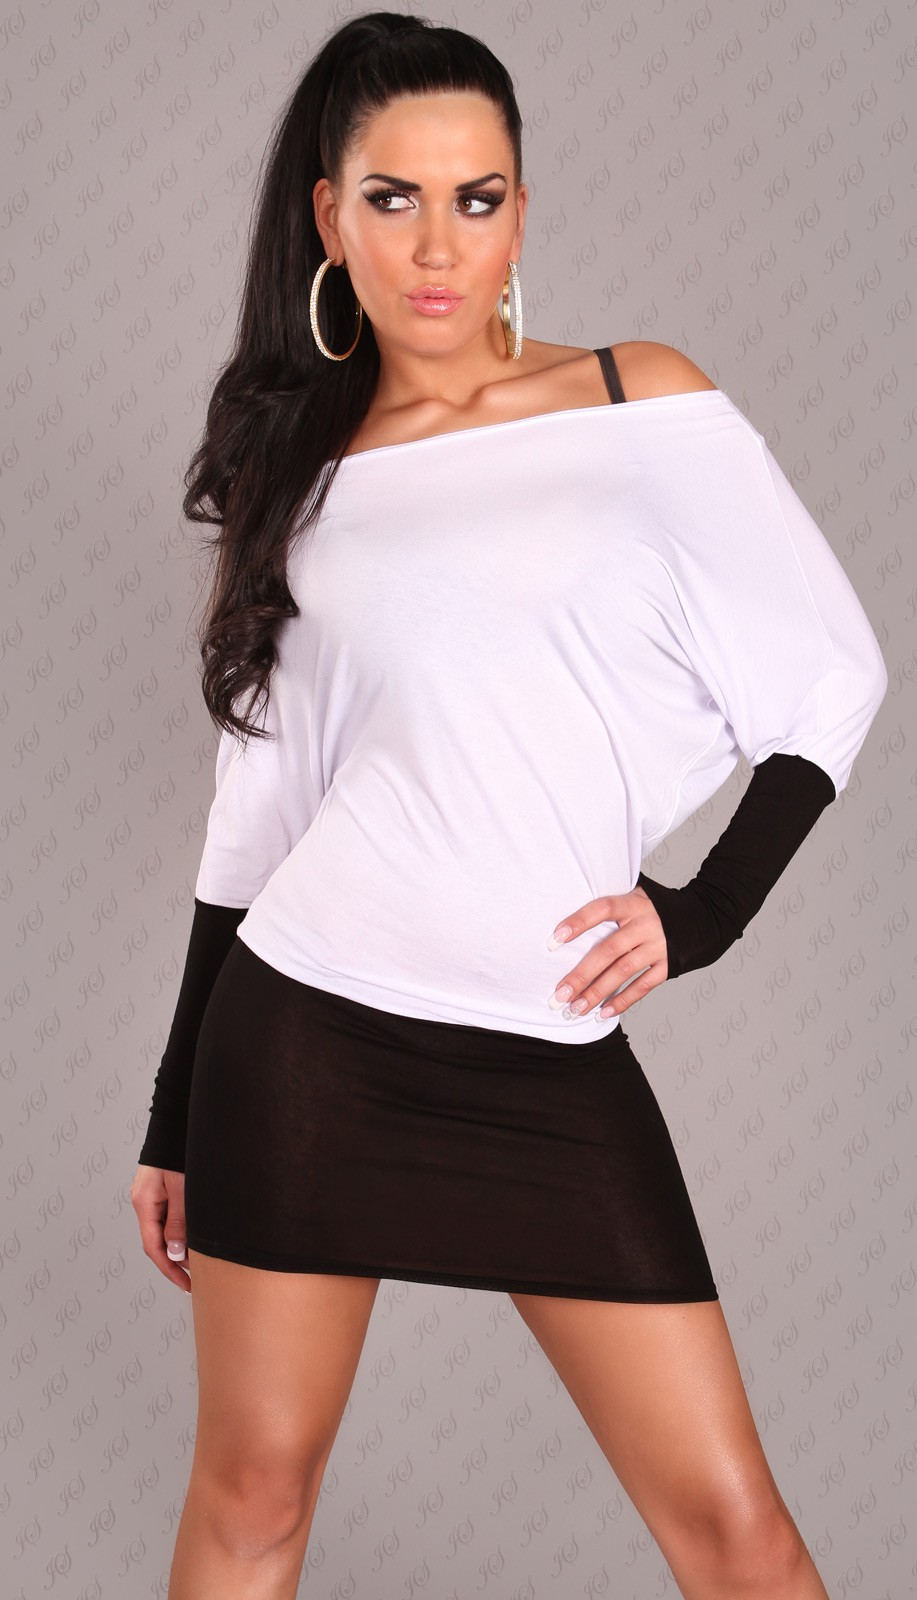 Black-White Two-Color Off-Shoulder Dress